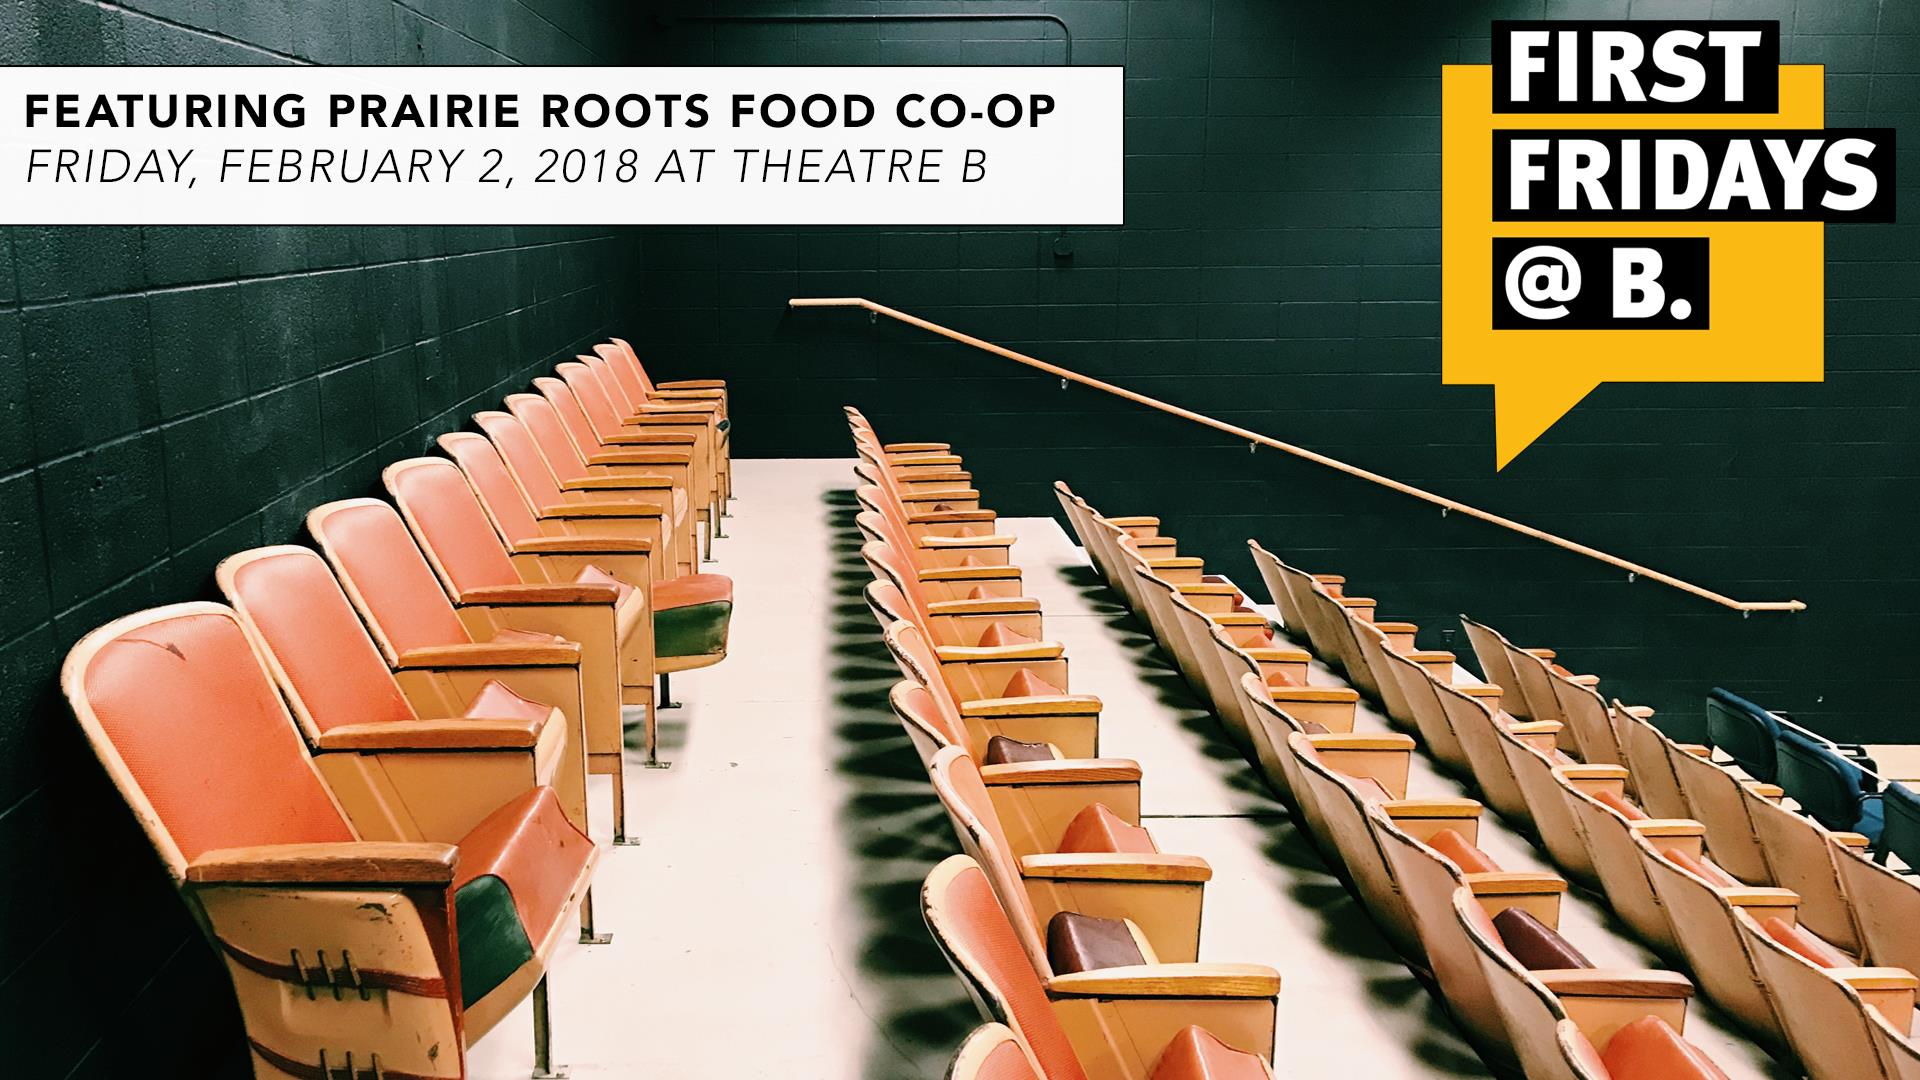 February 2018 - Our second  First Fridays at B  featured a presentation by Kaye Kirsch, Abby Gold & Joleen Baker of Prairie Roots Food Co-op.  [watch video]